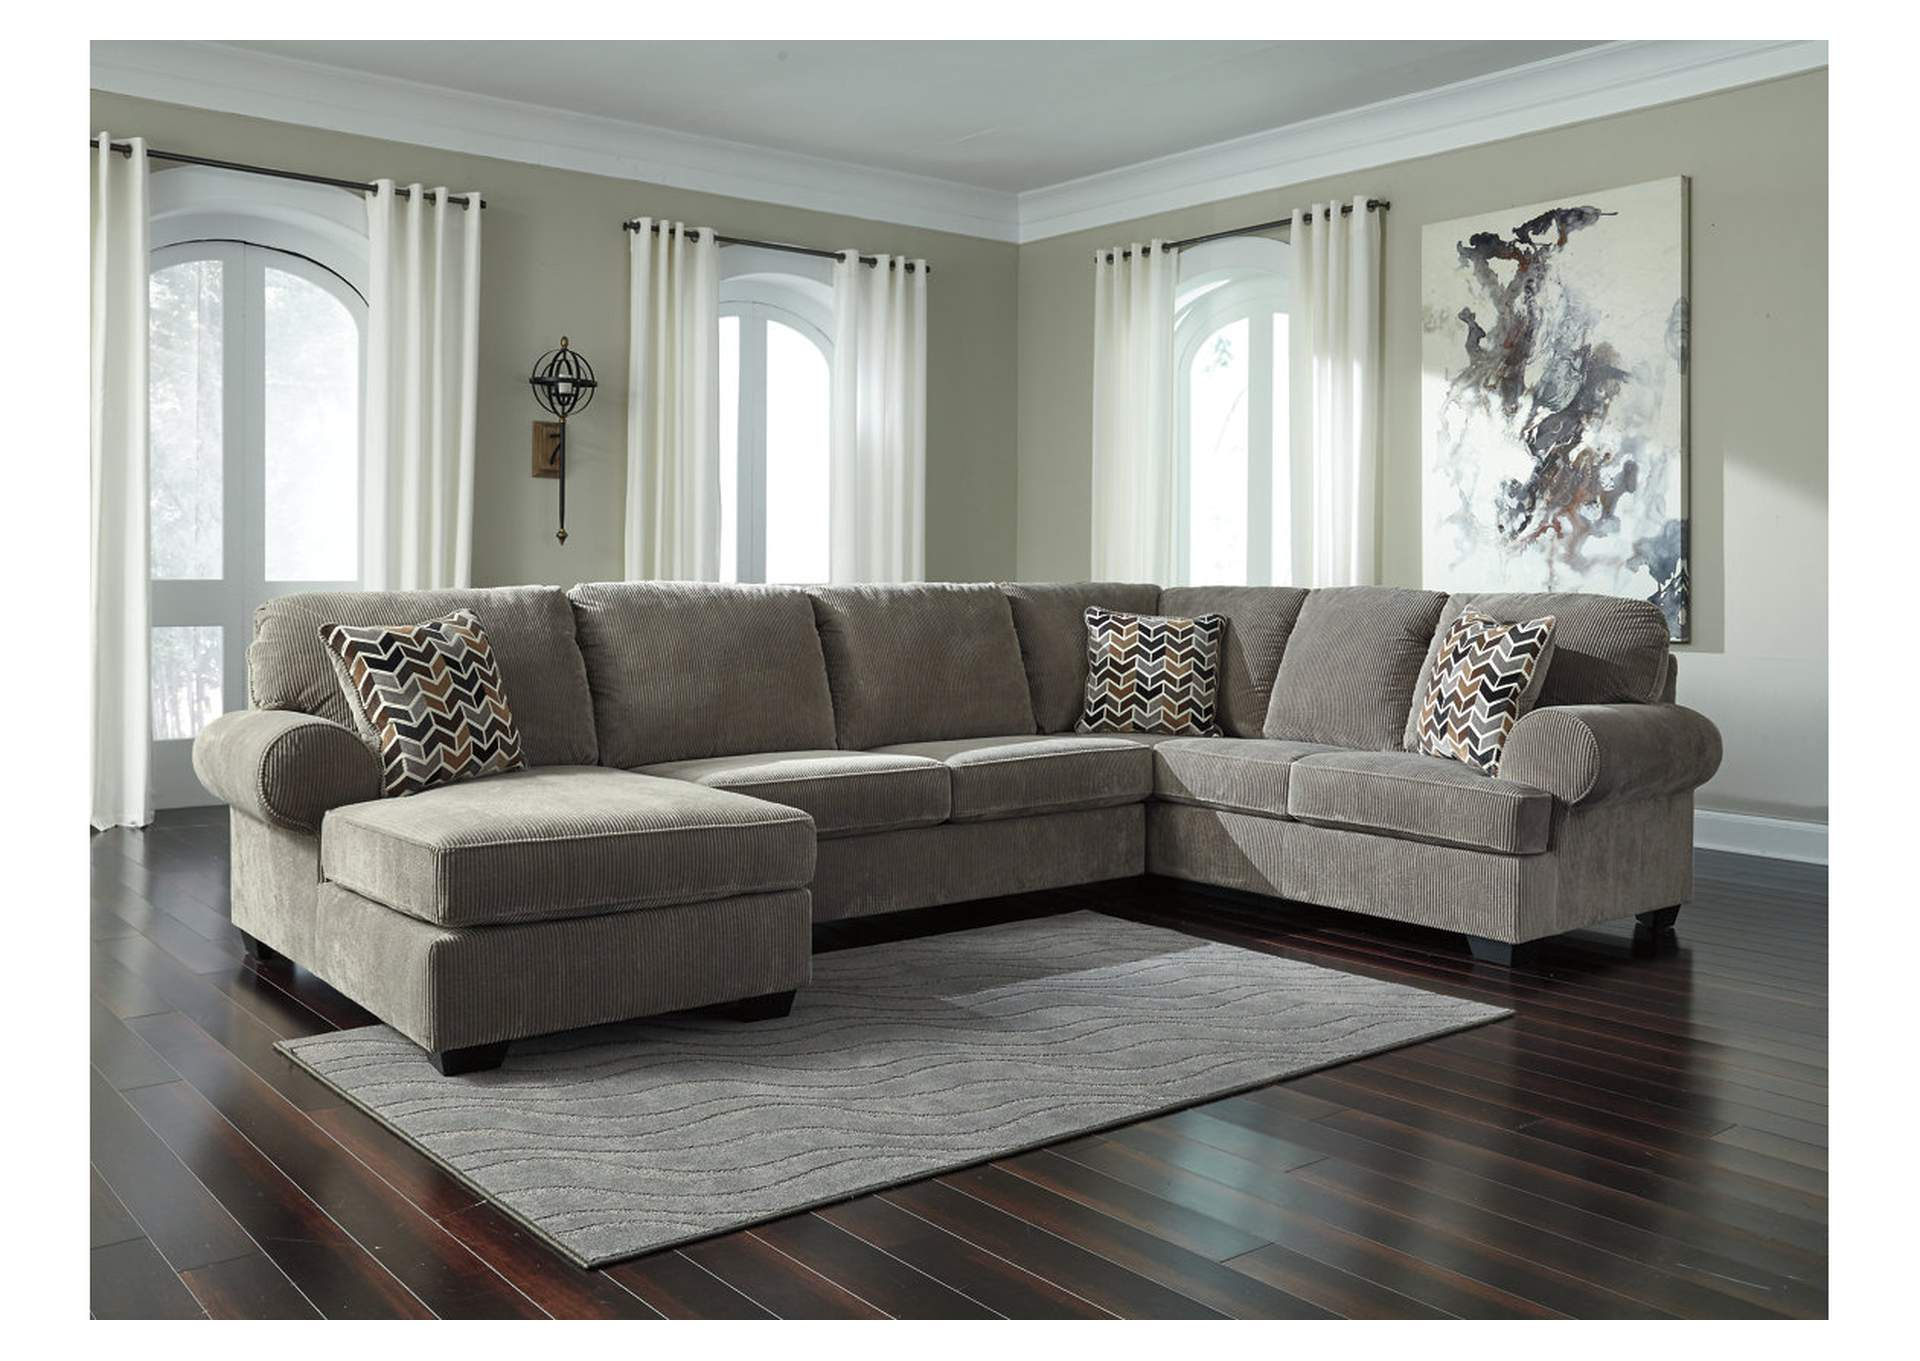 497028 Jinllingsly Gray Right Facing Sofa Sectional